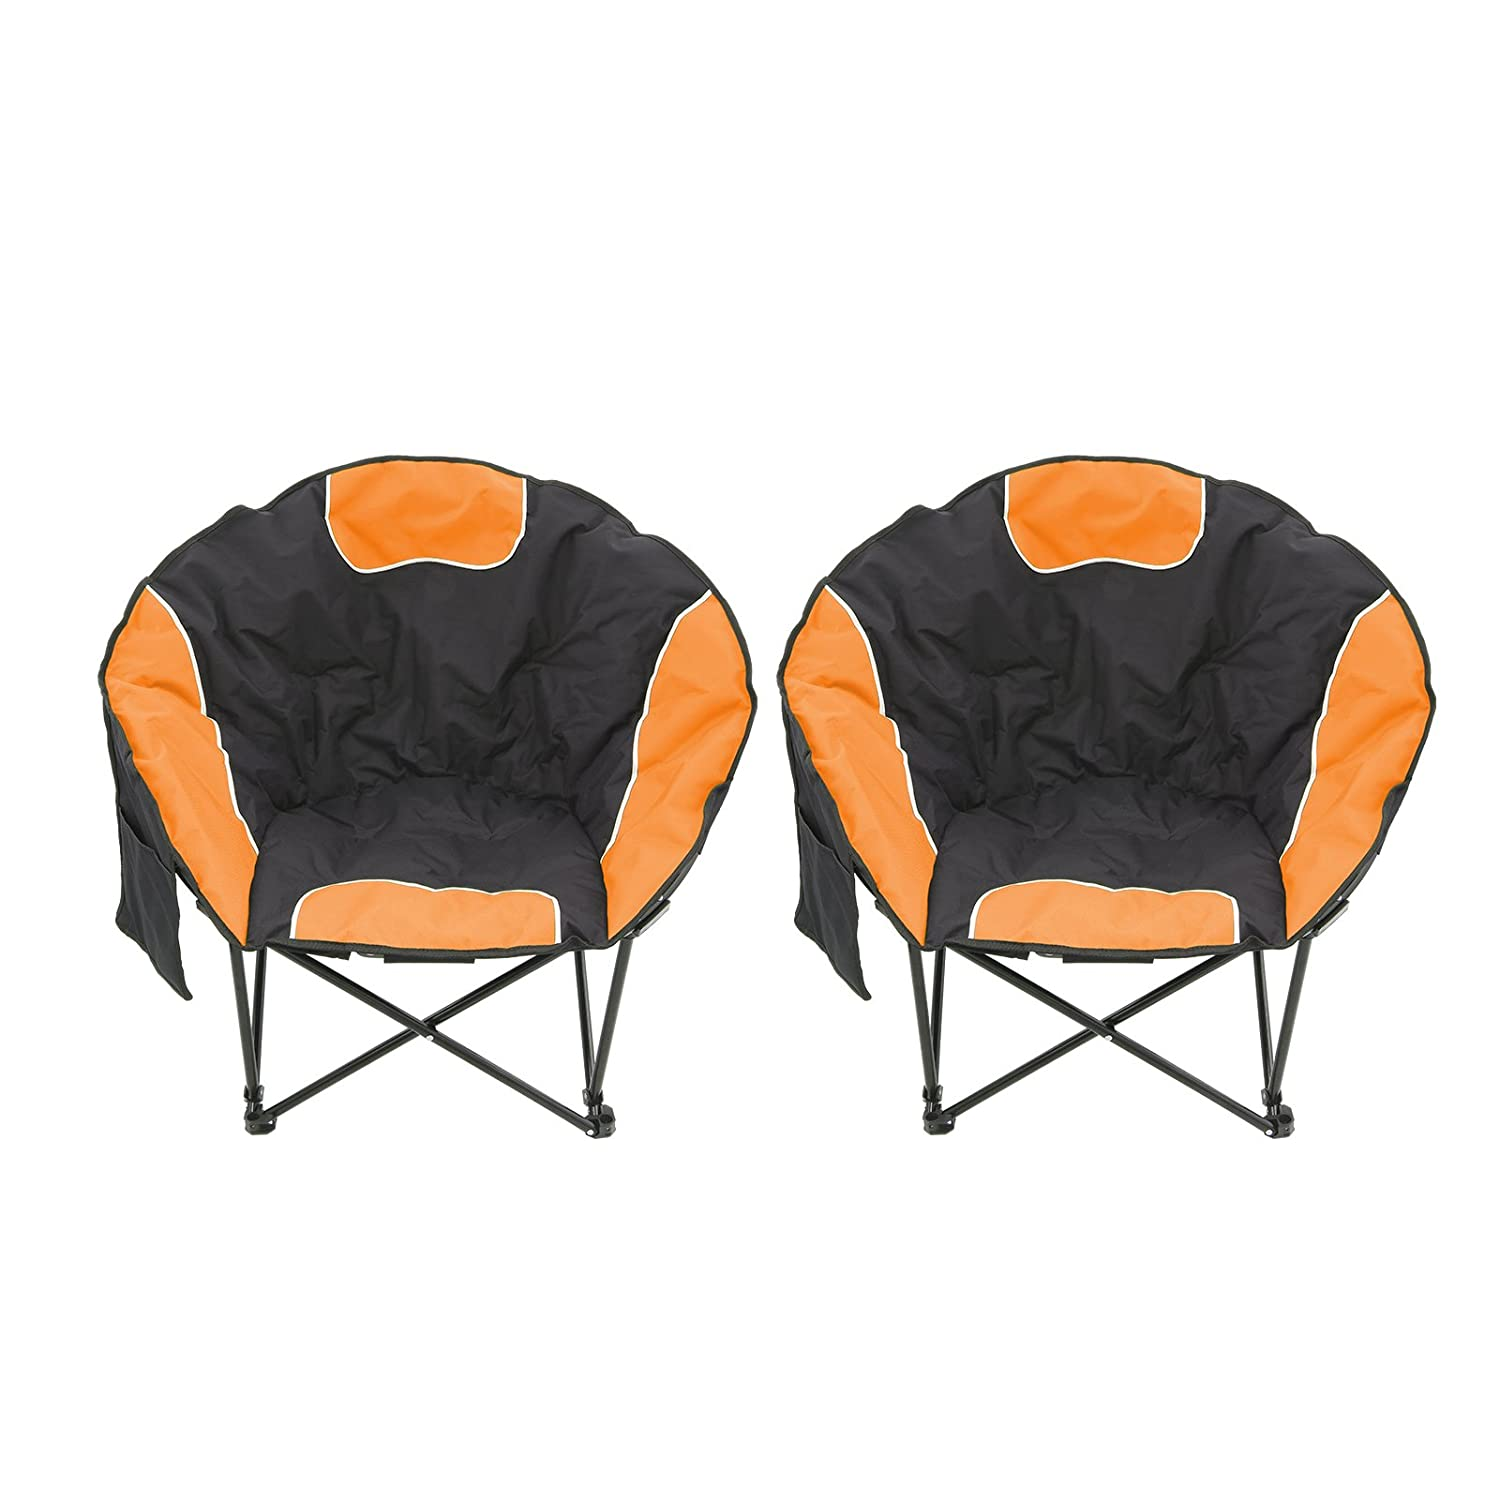 Magshion Folding Padded Round Camping Beach Chair with Storage Carry Bag Set of 2